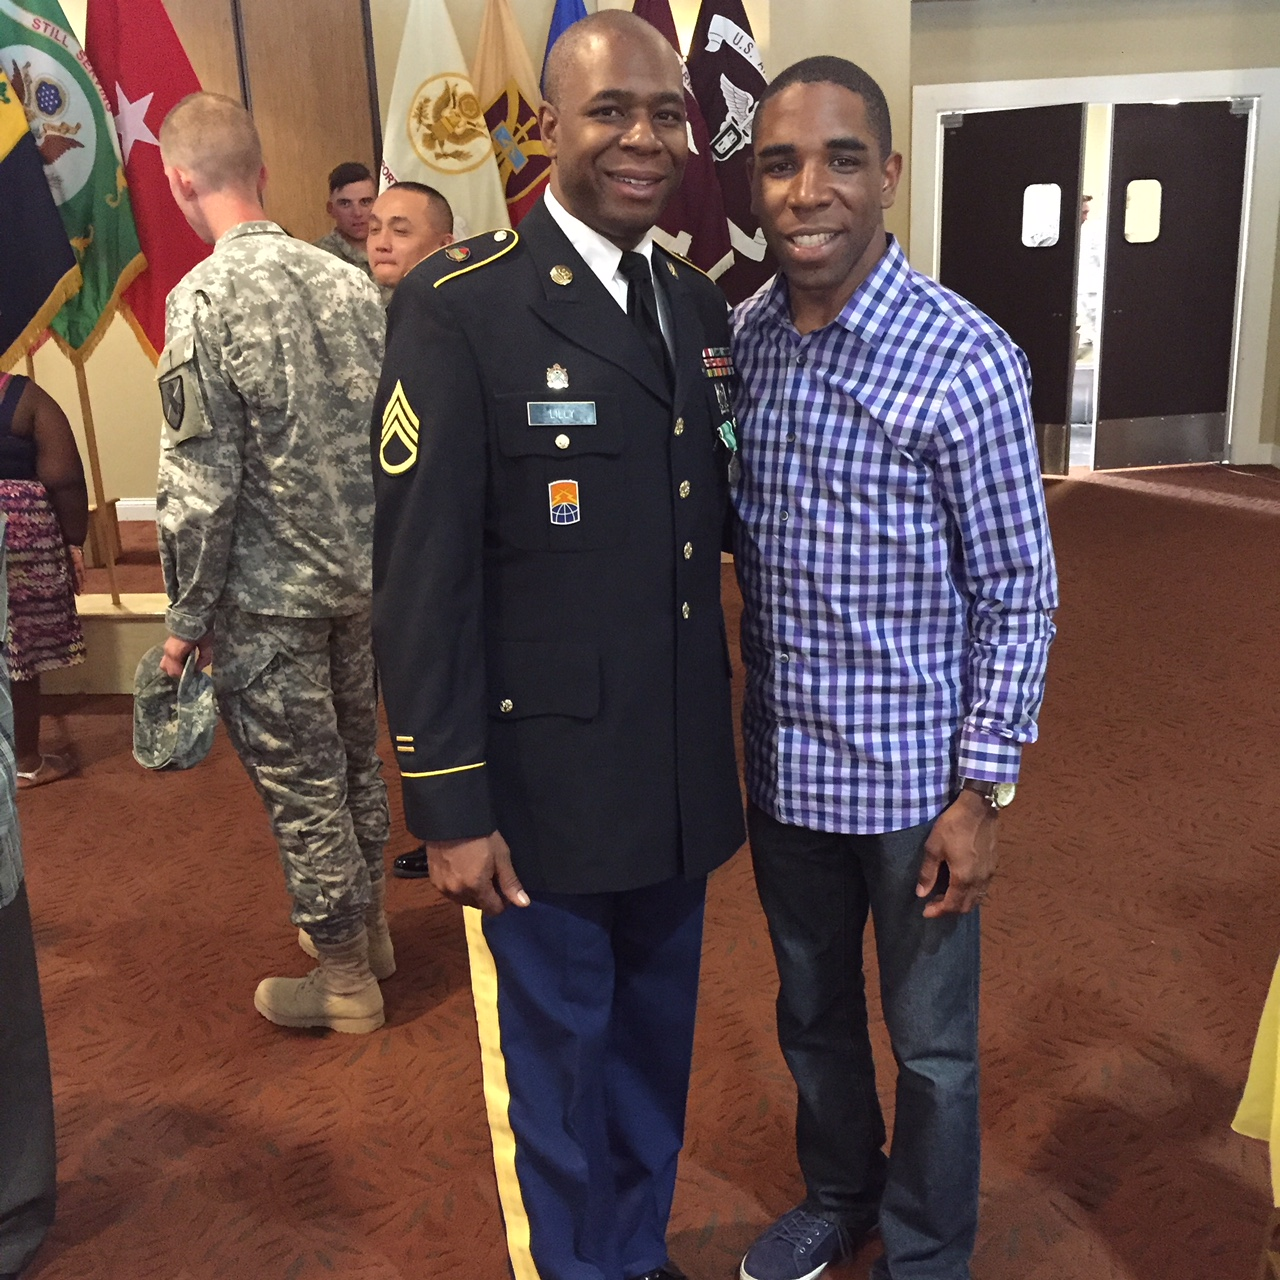 "<div class=""meta image-caption""><div class=""origin-logo origin-image wtvd""><span>WTVD</span></div><span class=""caption-text"">DeJuan celebrating his brother's retirement from the US Army after 20 years of service. (Credit: DeJuan Hoggard)</span></div>"